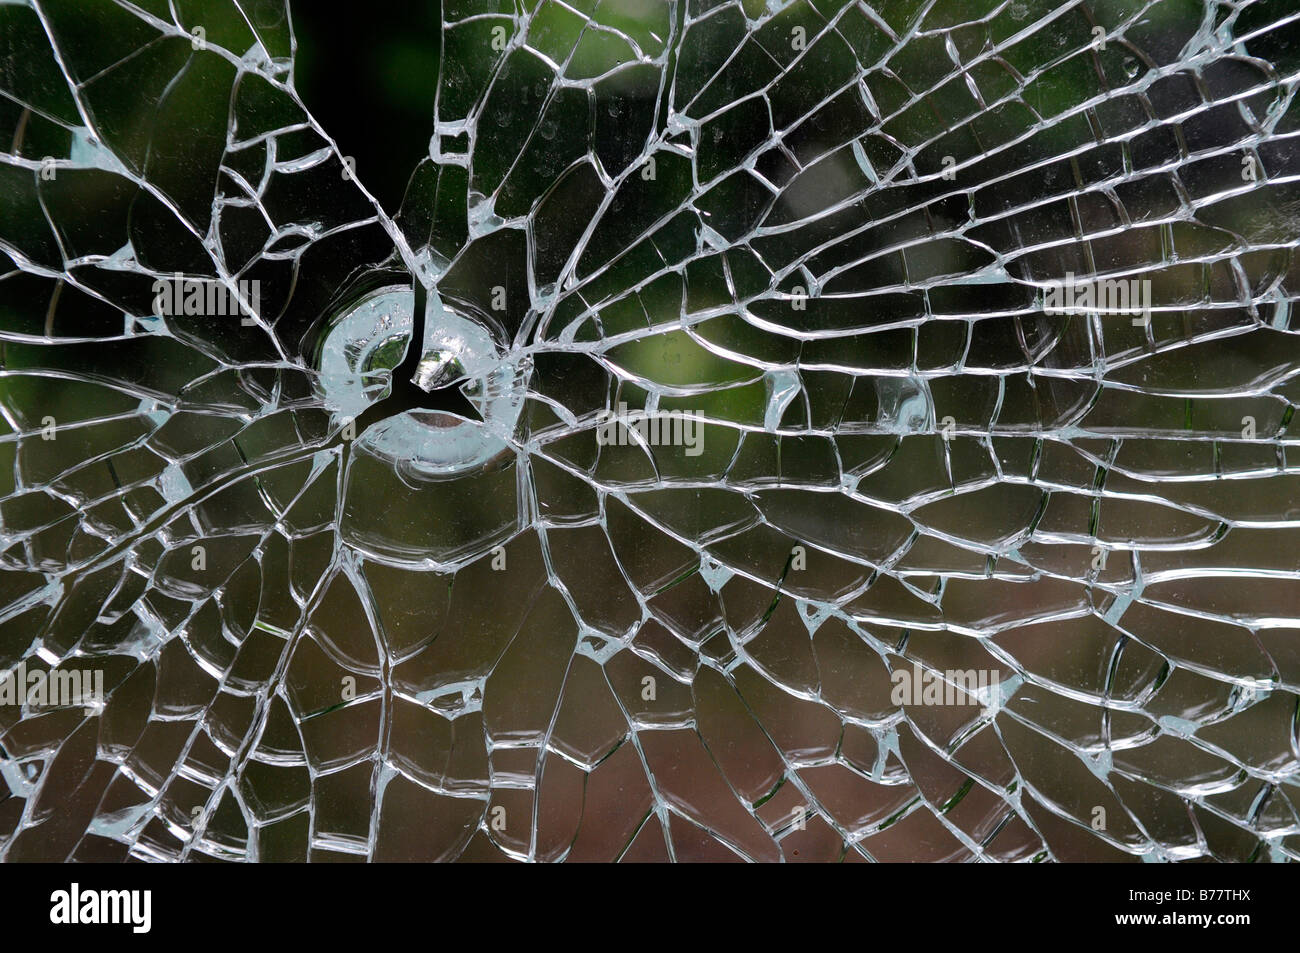 Shattered safety glass panel - Stock Image